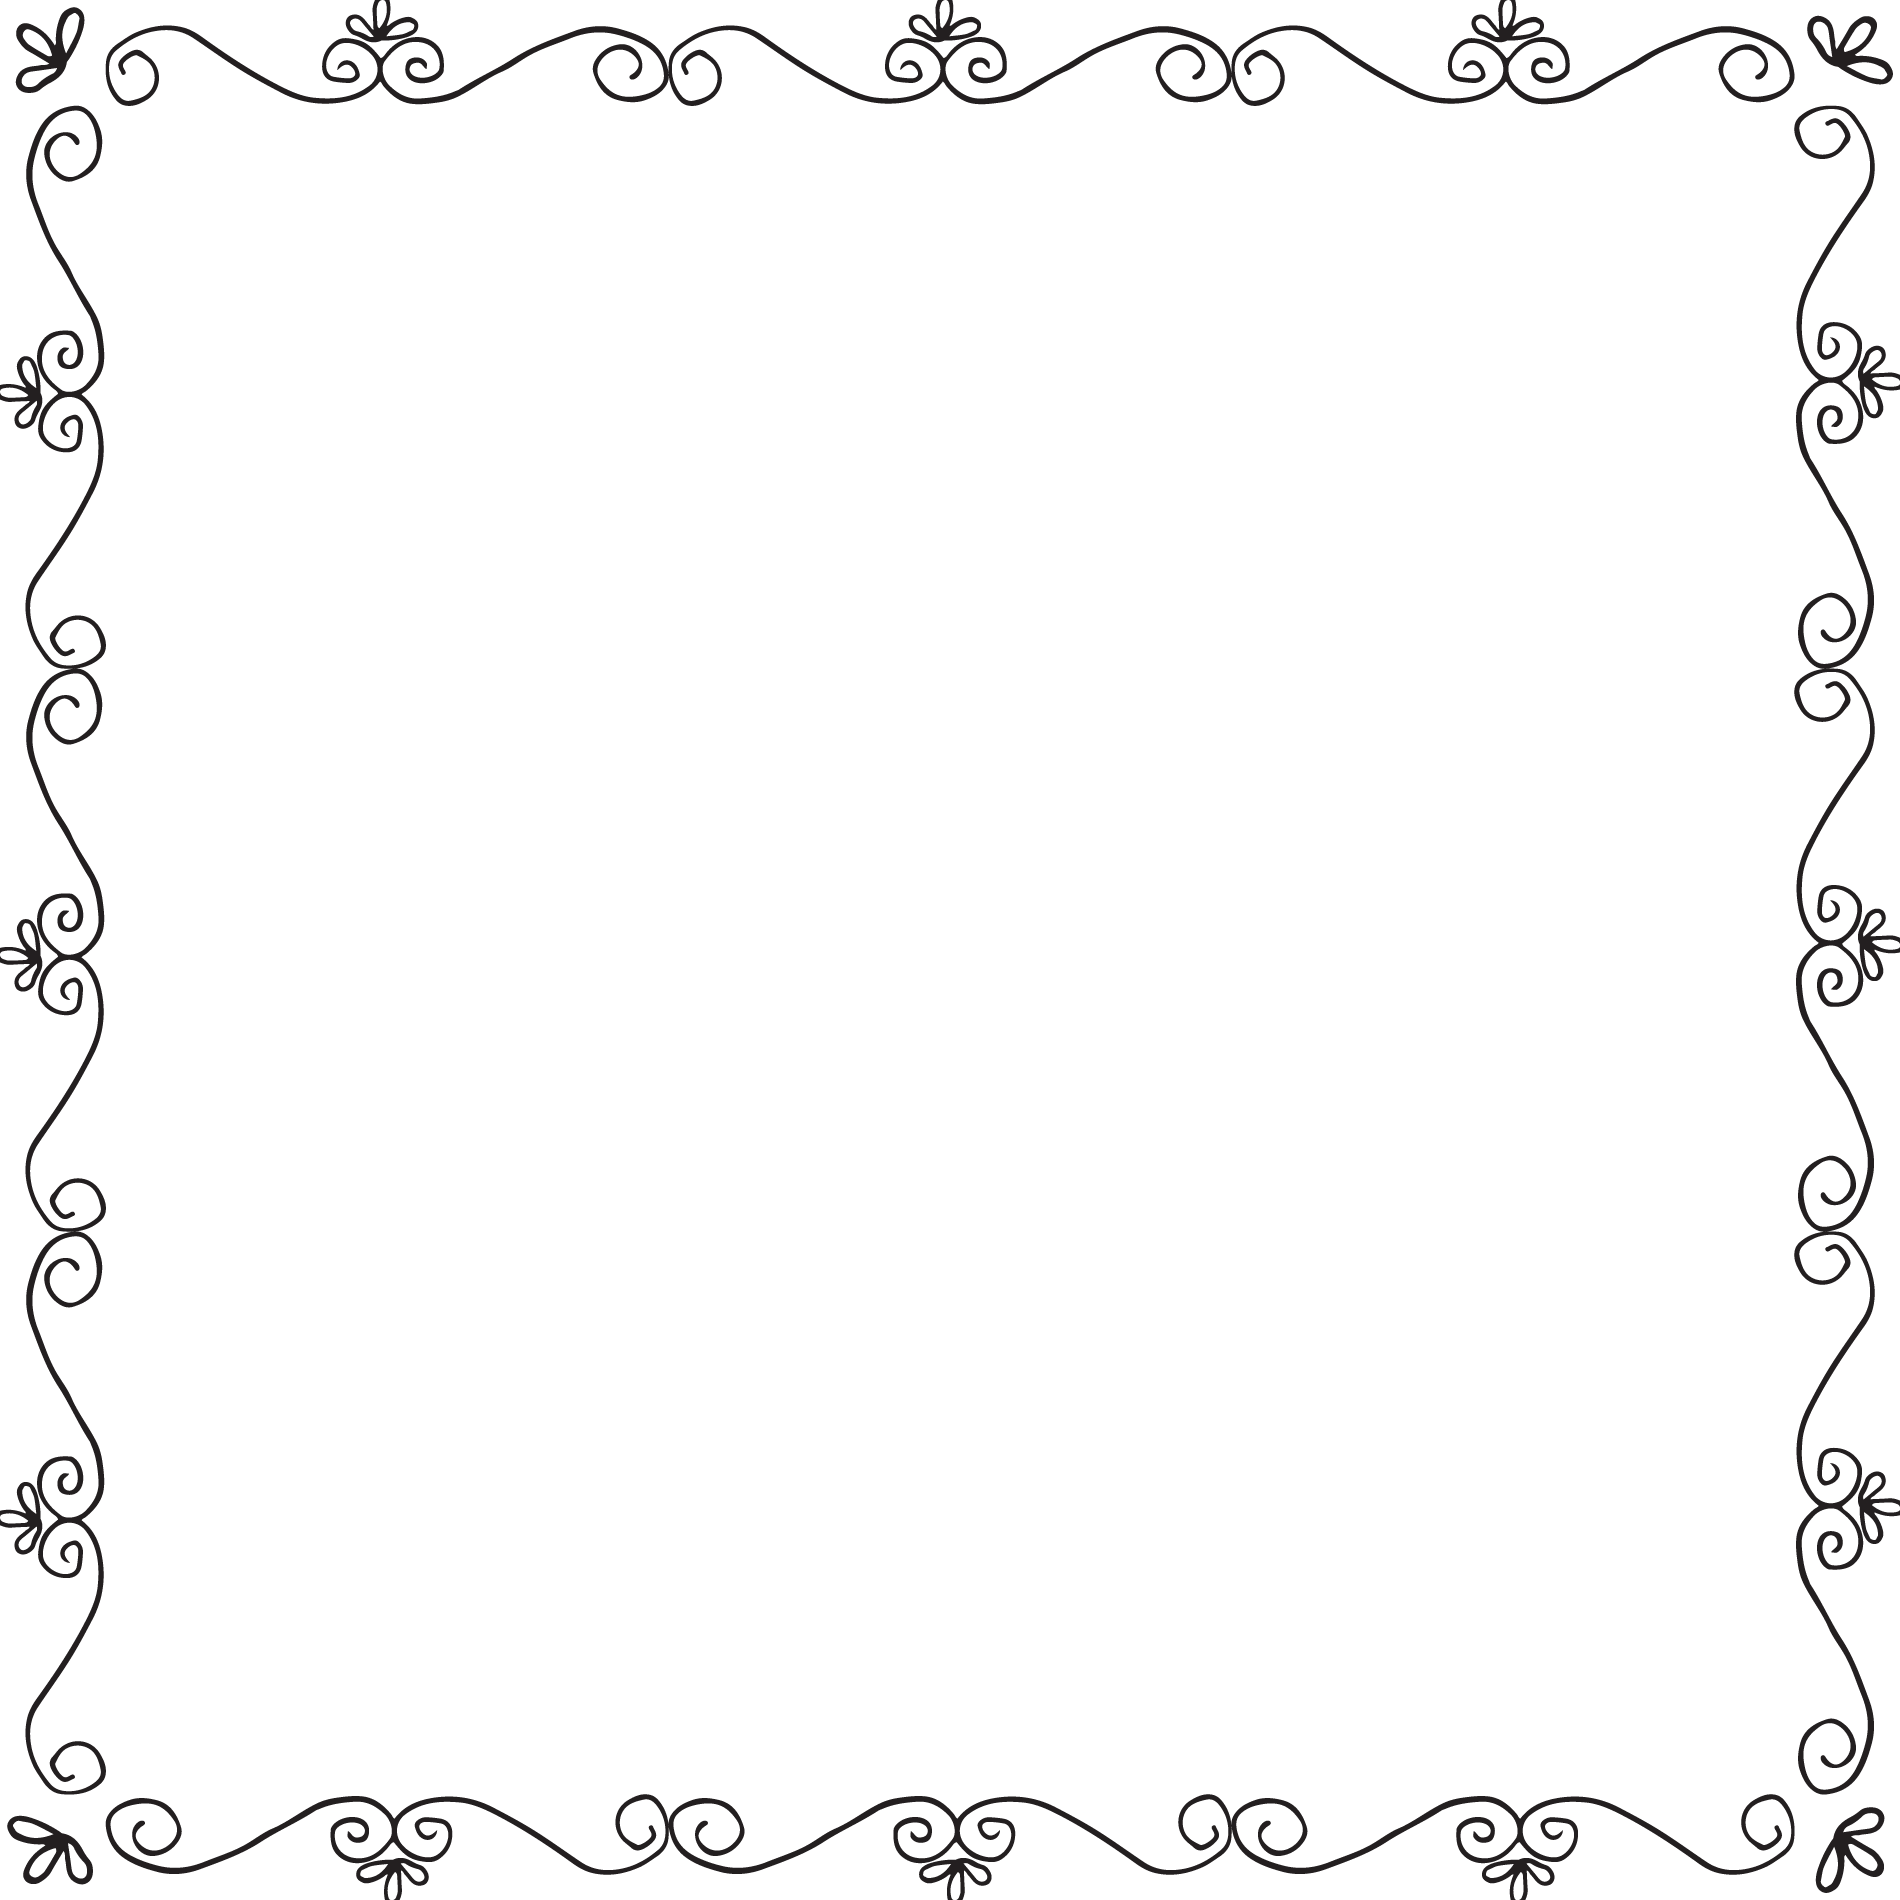 Beauty And The Beast Frame Png 2 Png Image